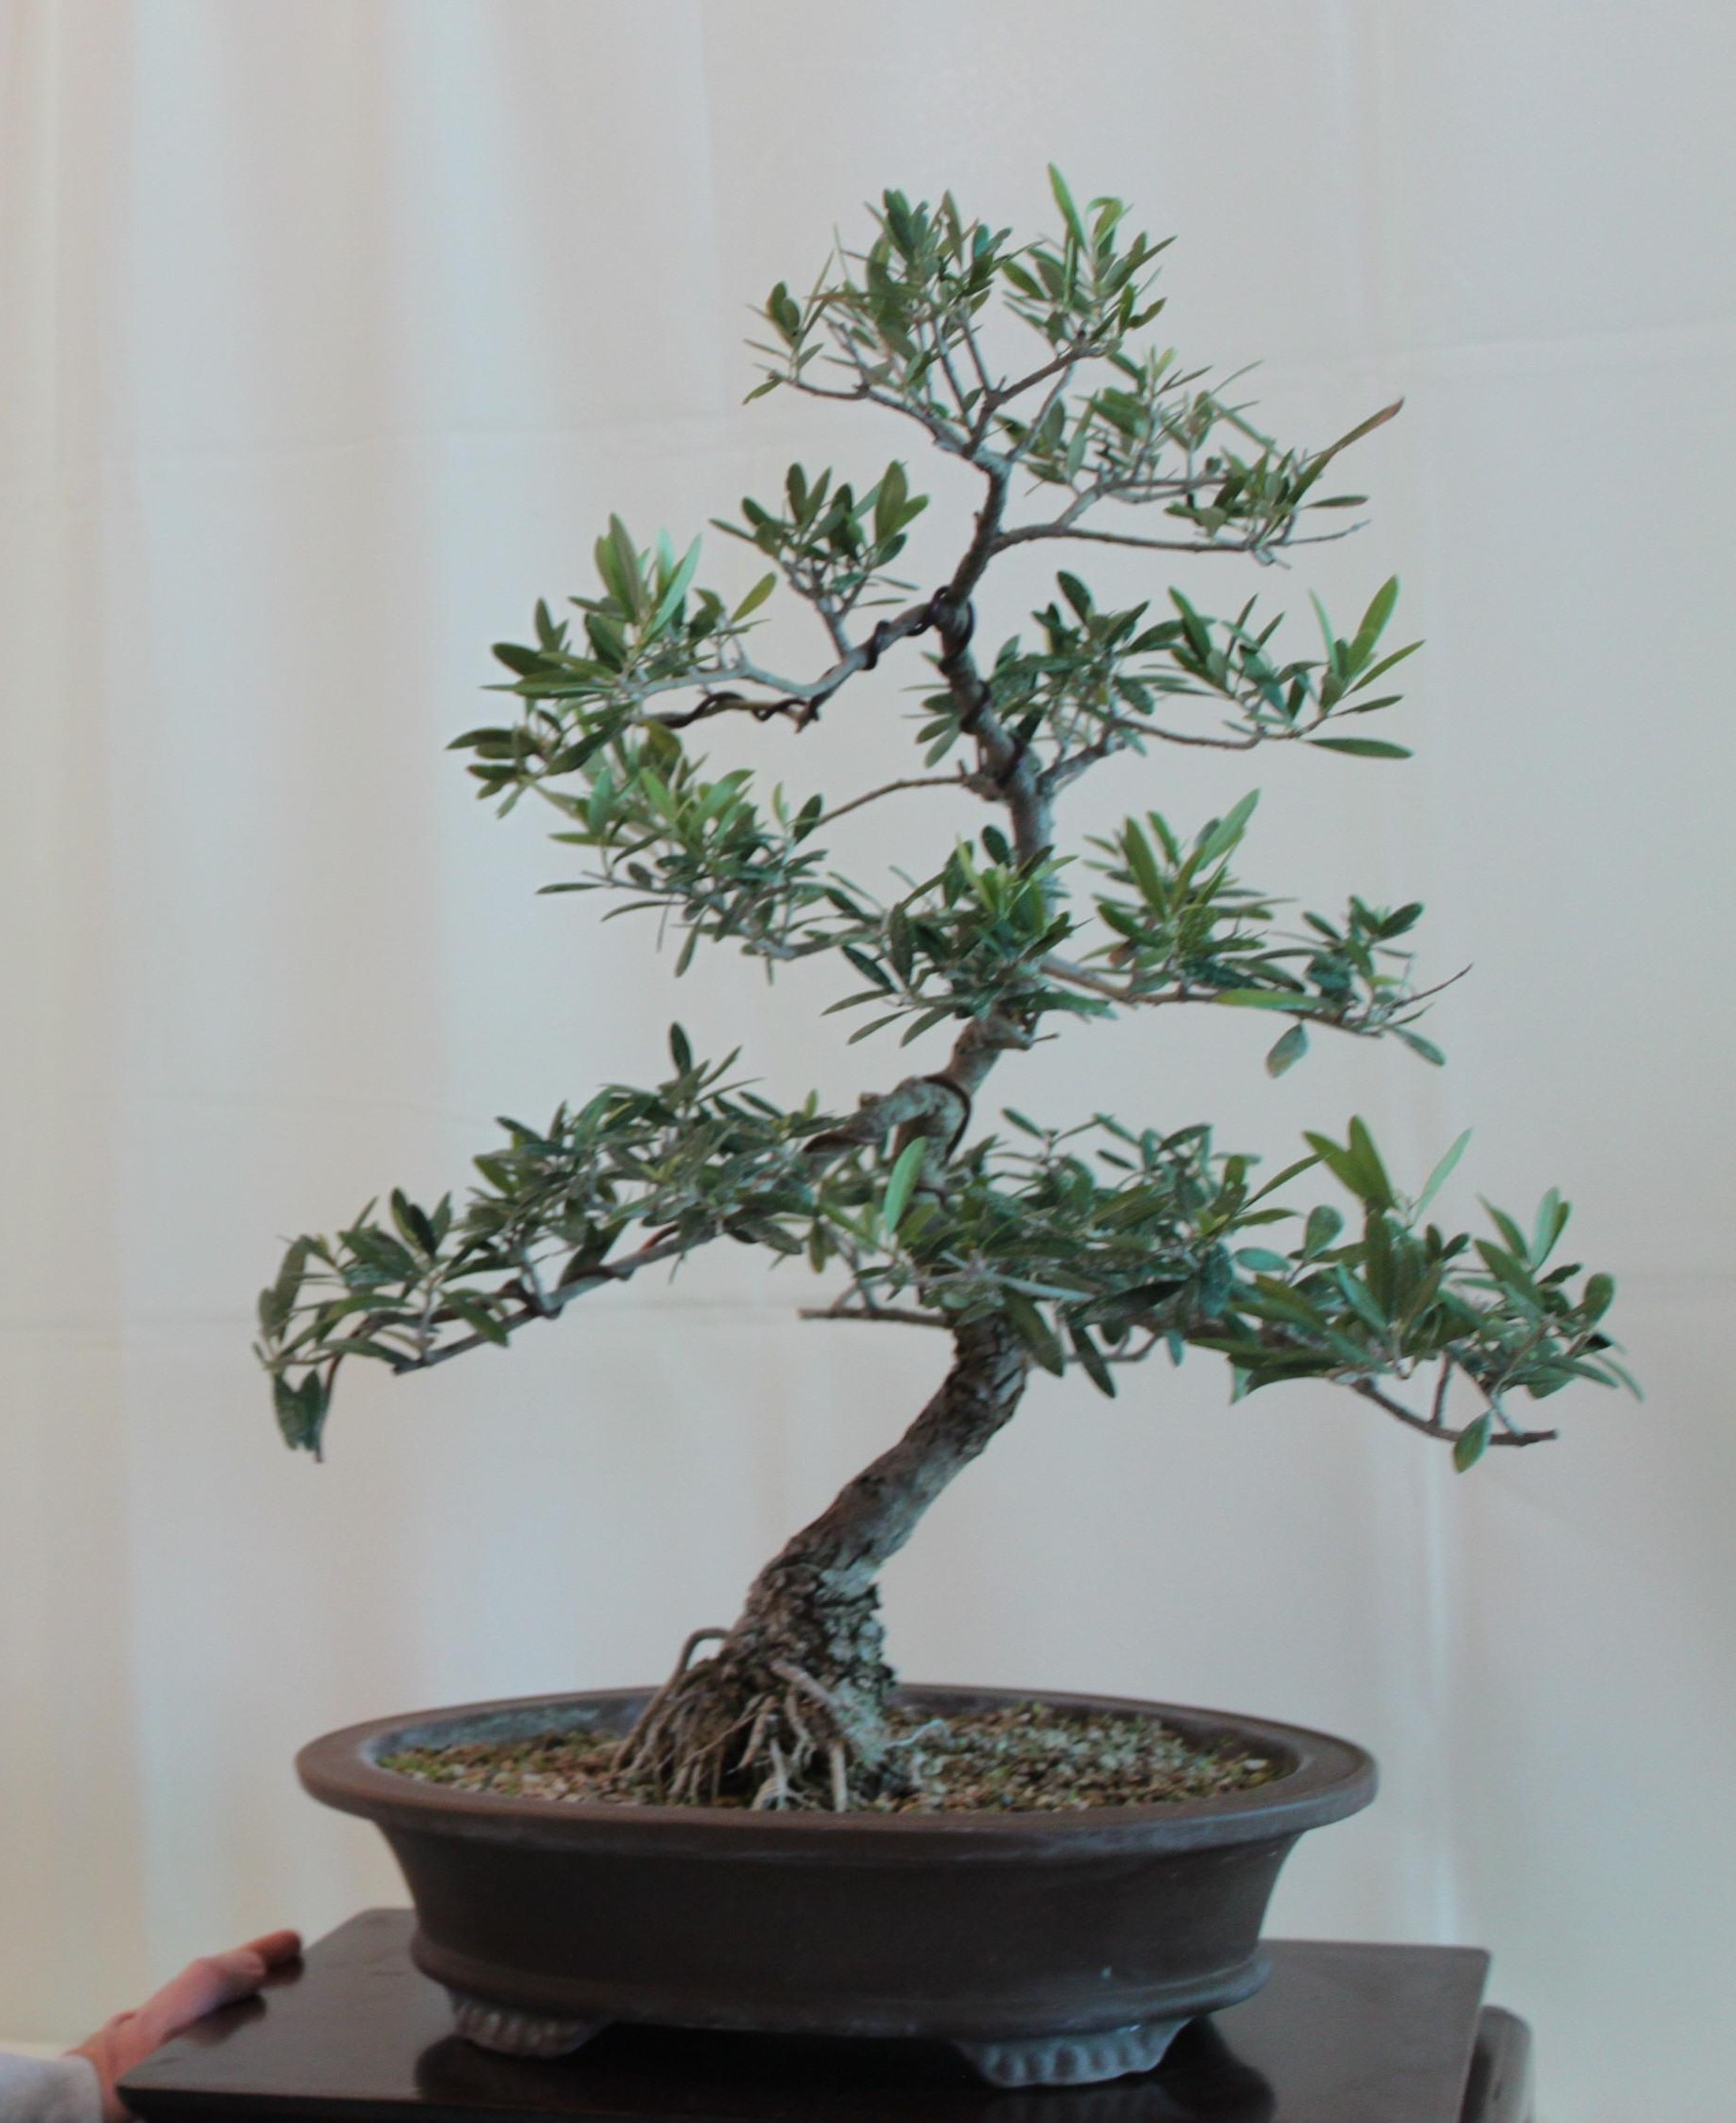 How to trim an ornamental olive tree garden design ideas for Growing olive tree indoors